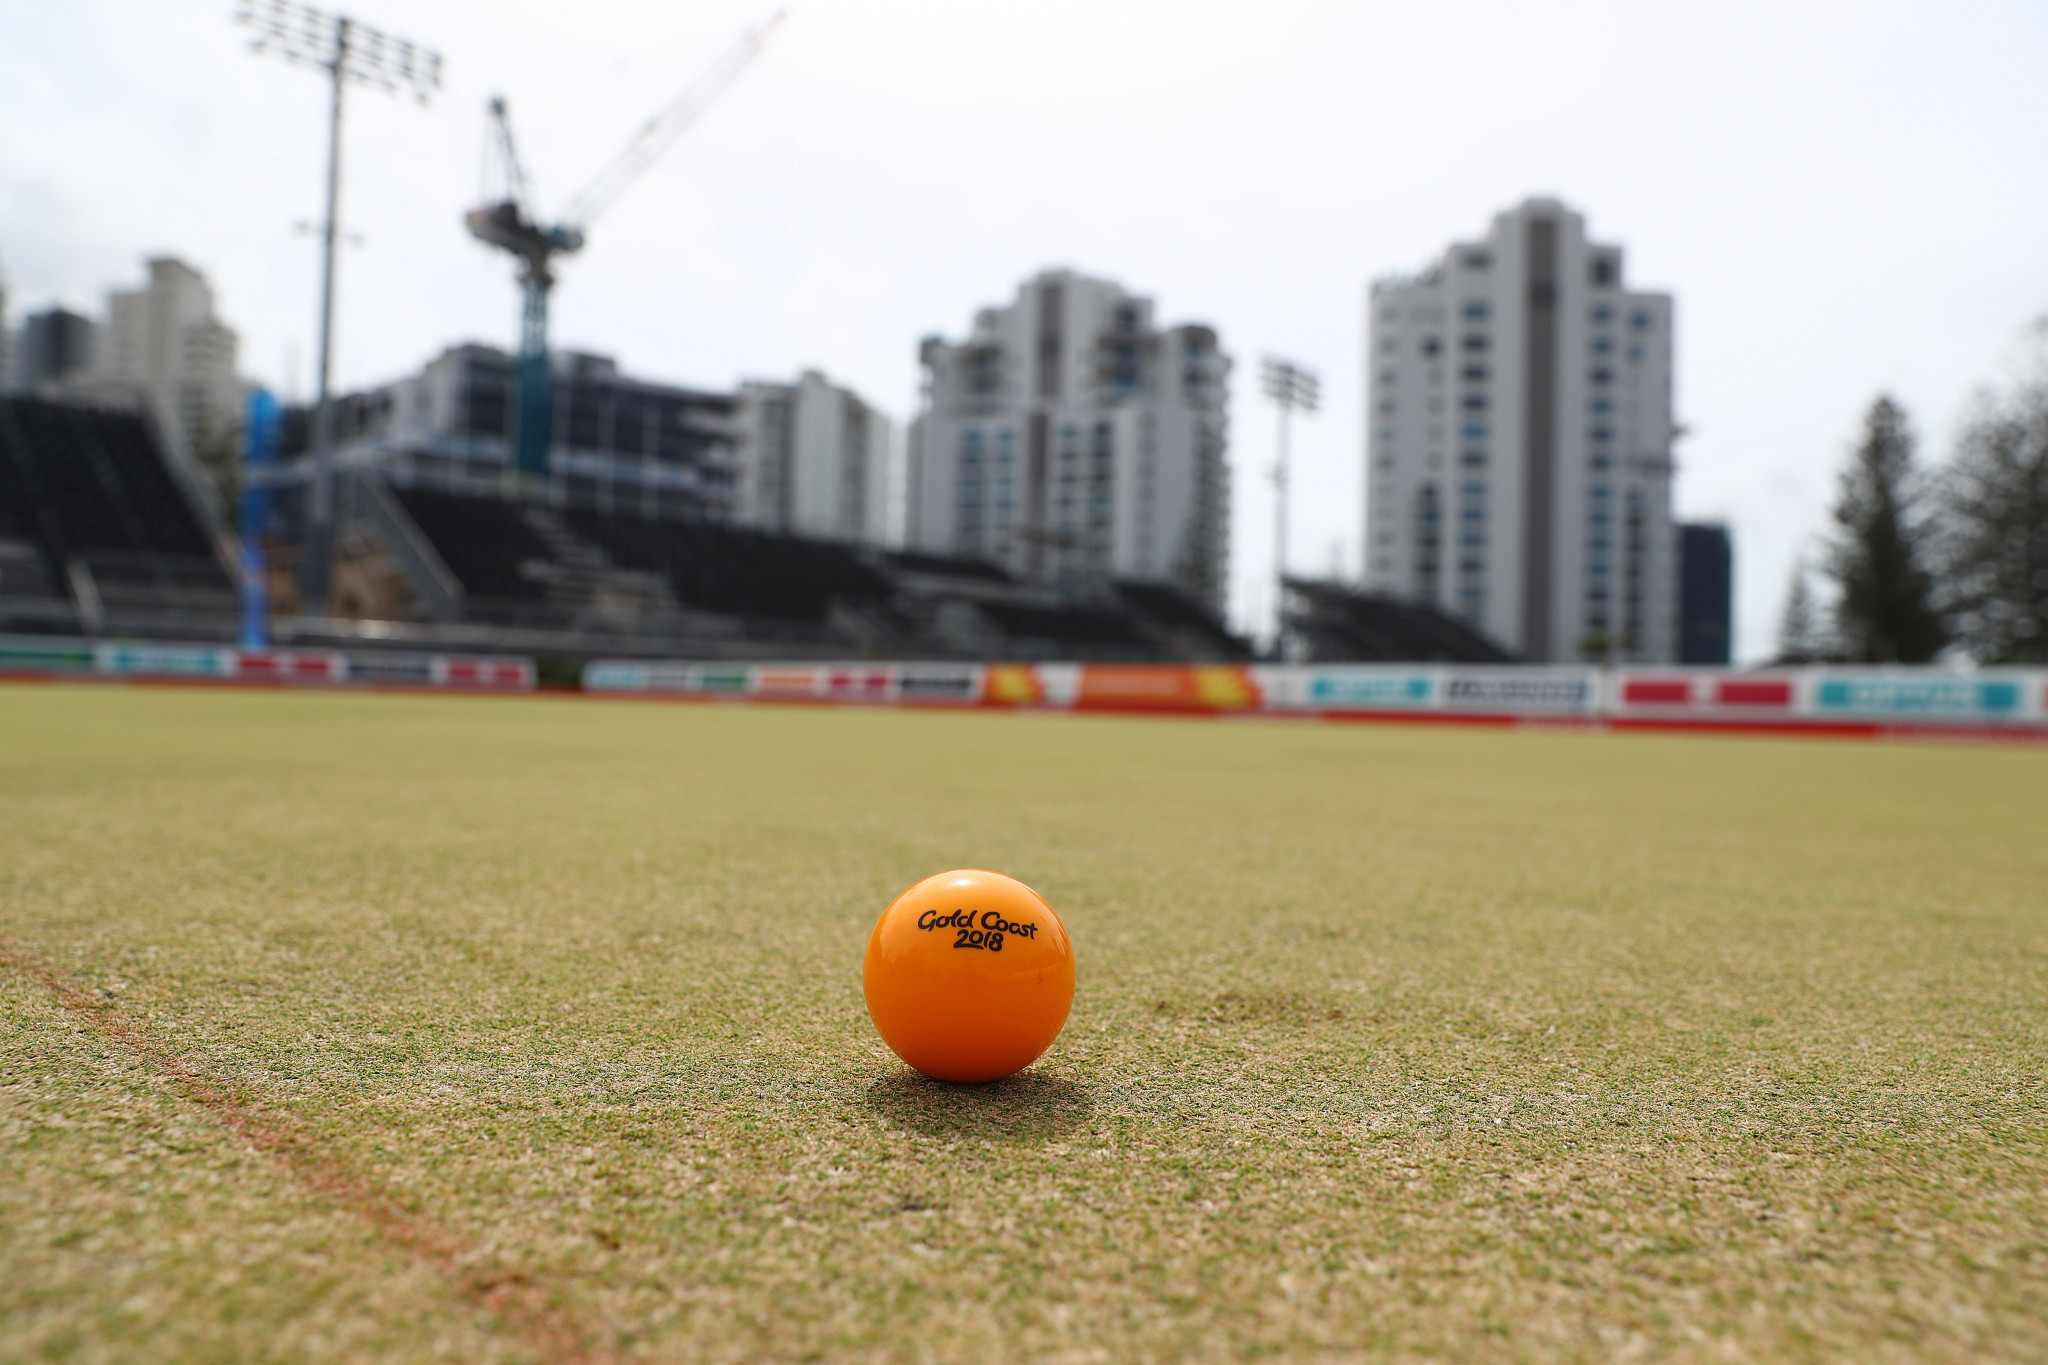 World Bowls Championships finals venues in Gold Coast confirmed